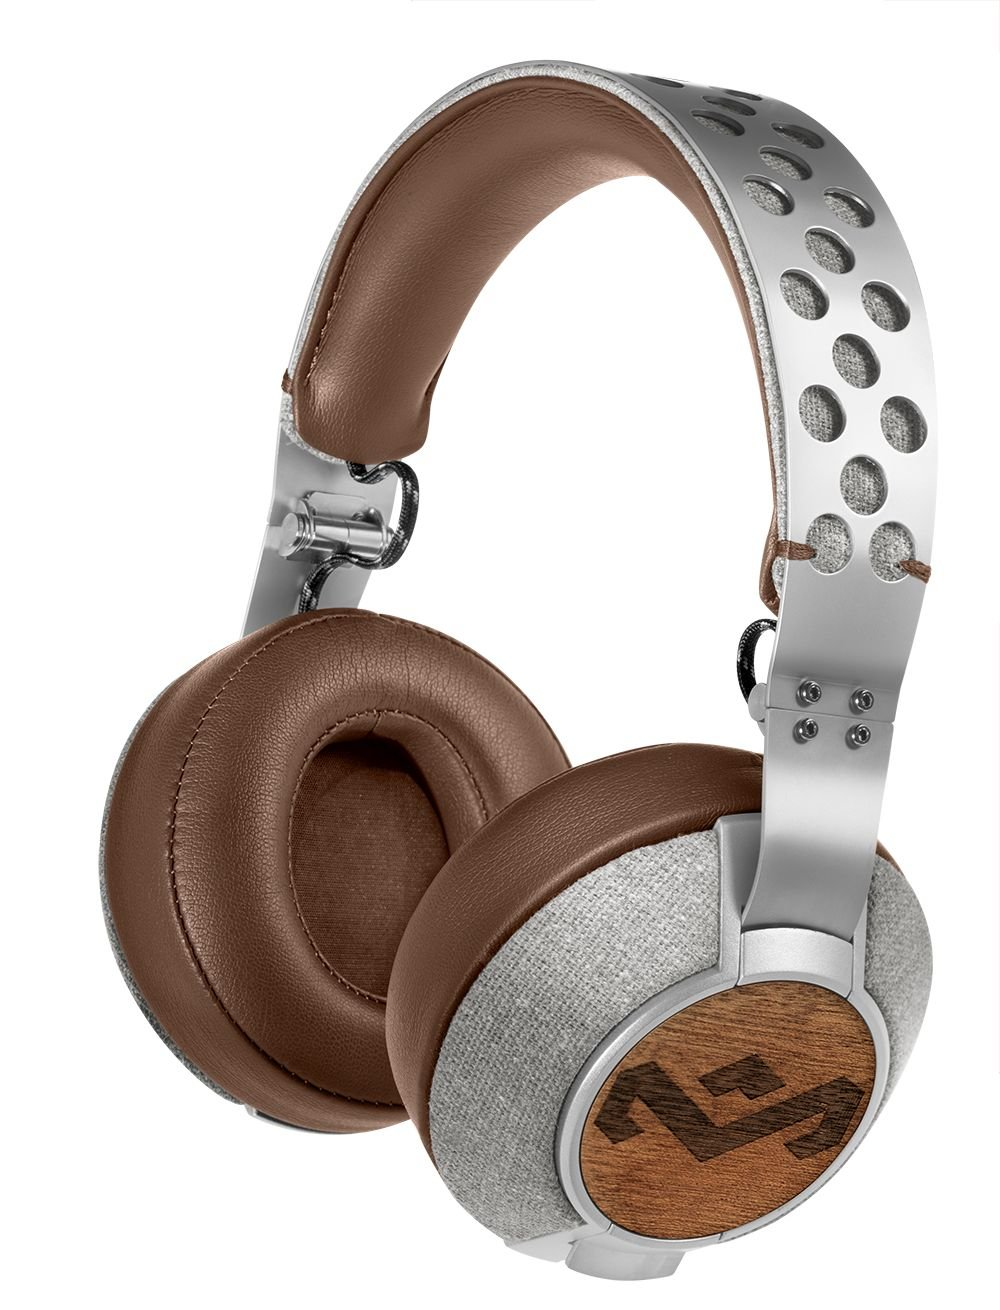 House of Marley EM-FH033-SD Liberate XL Headphones by House of Marley